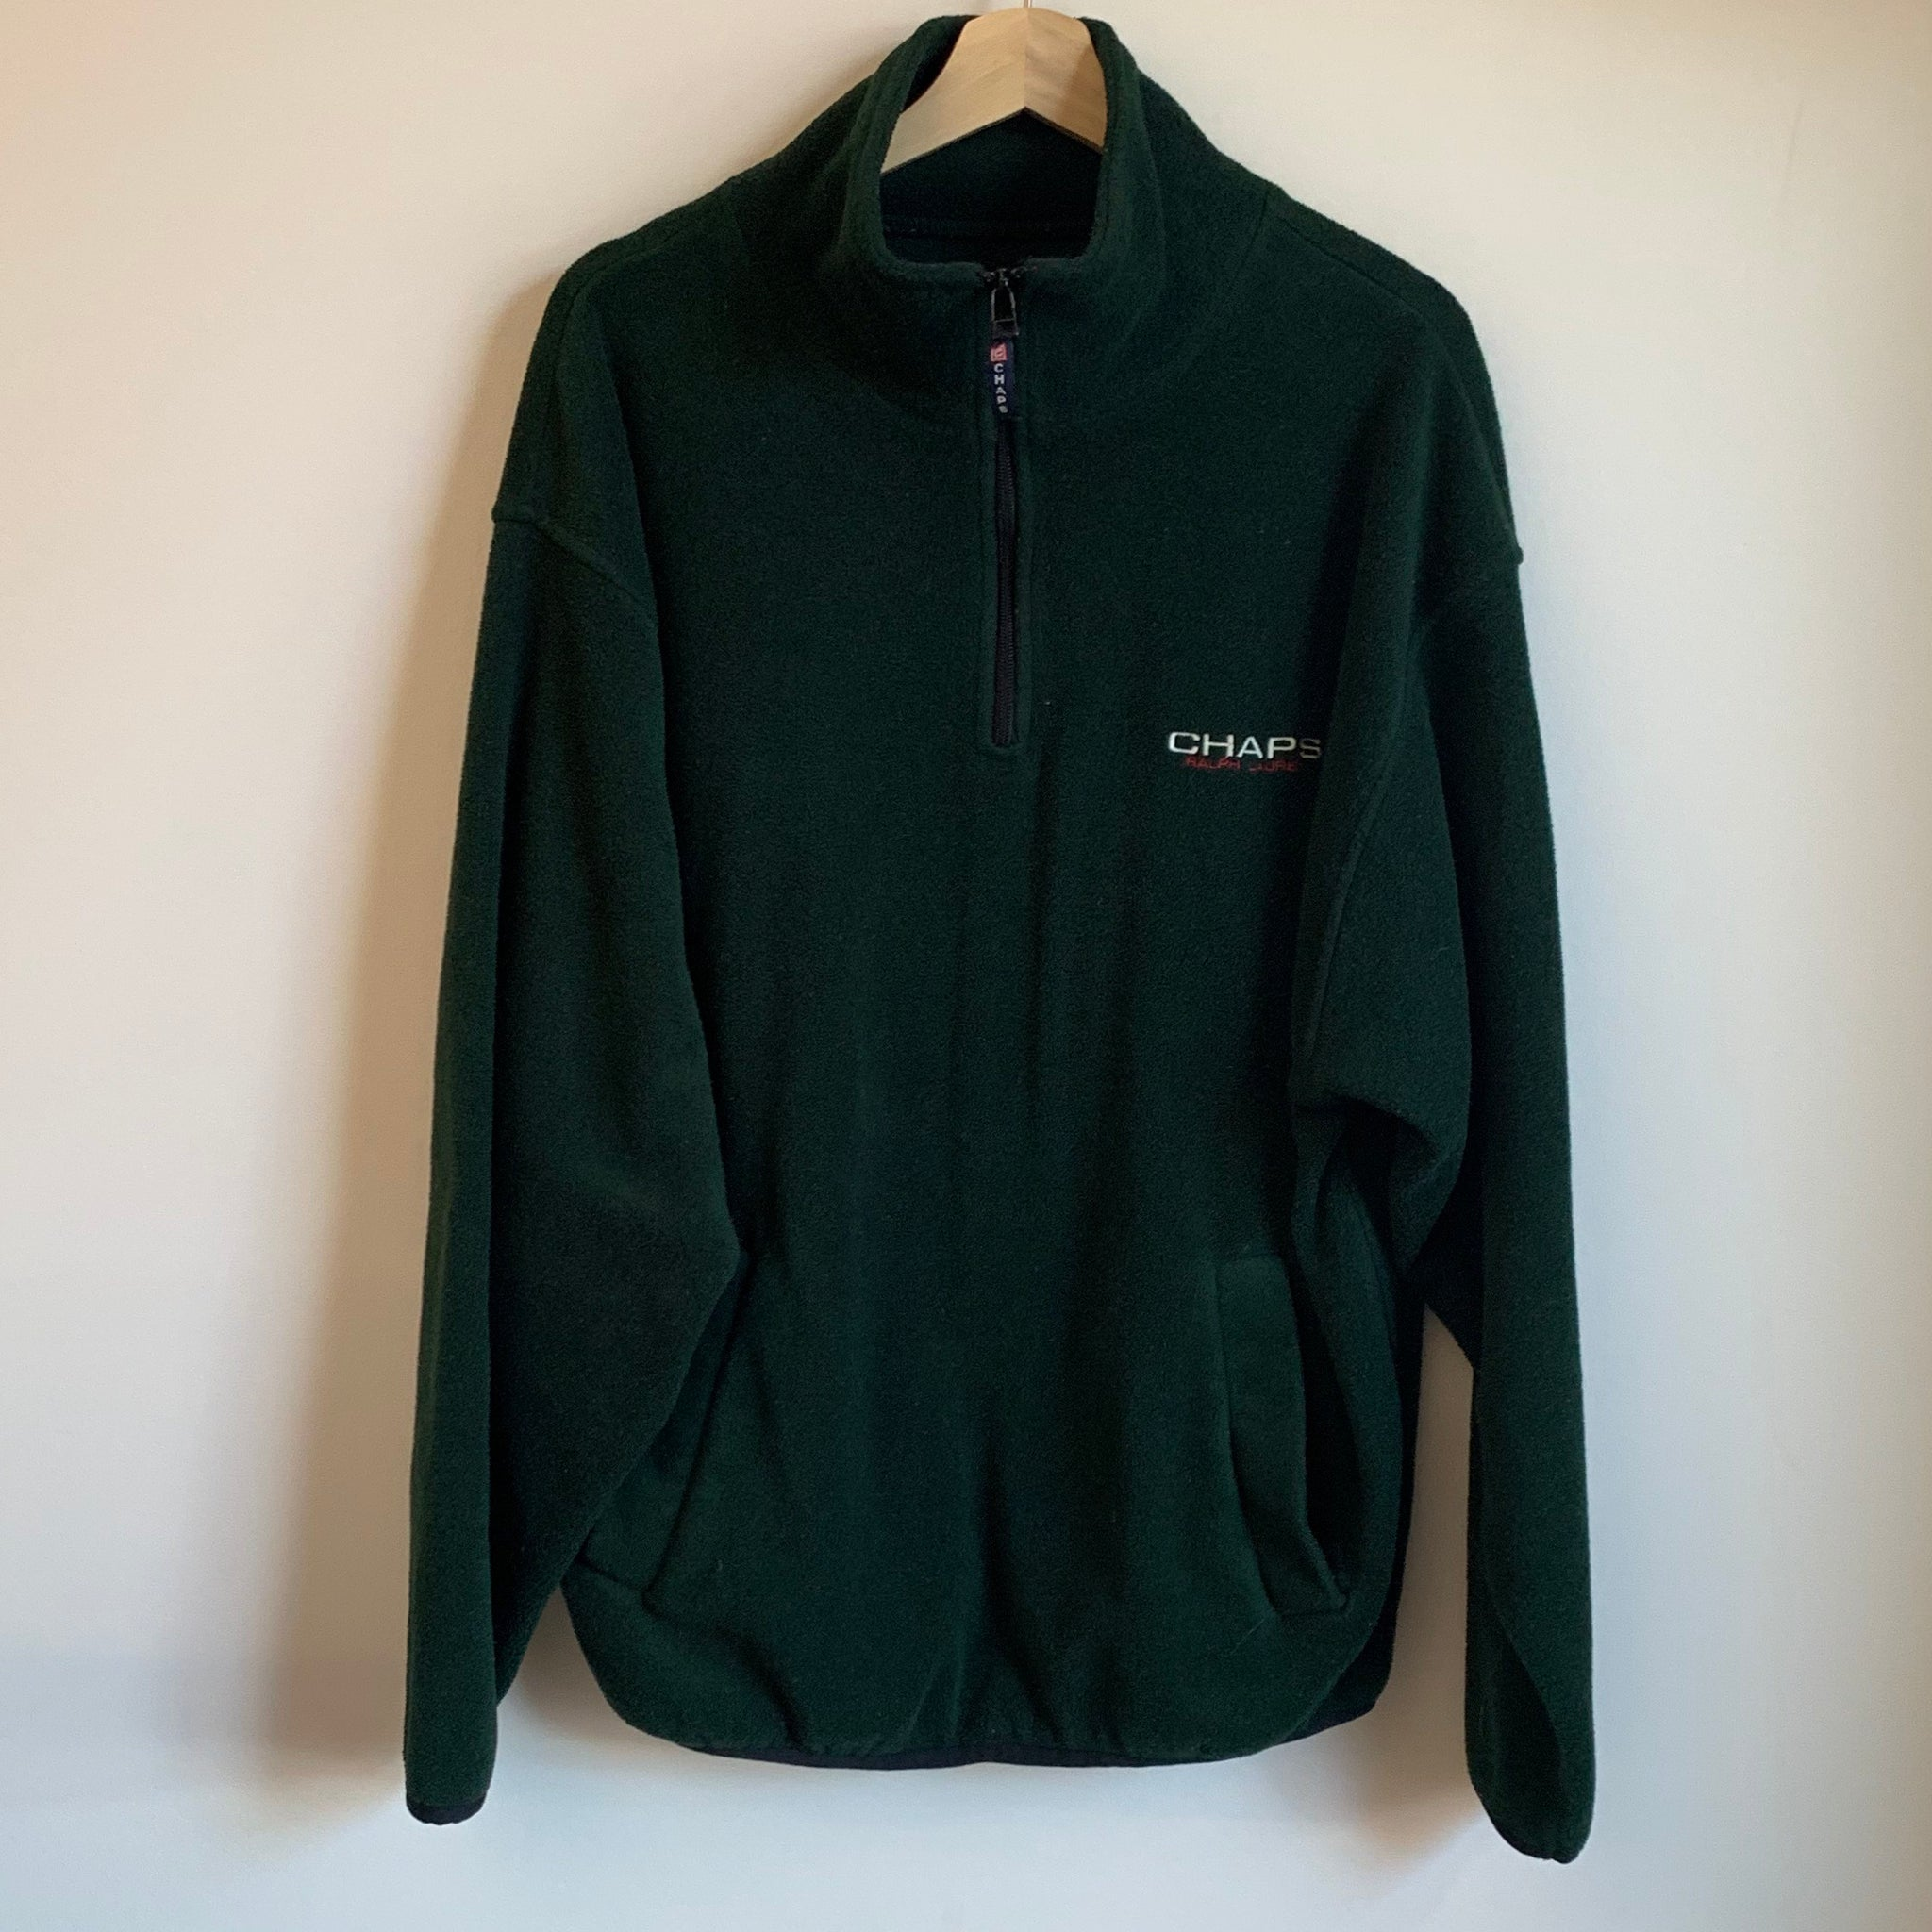 Chaps Ralph Lauren Green Fleece Sweatshirt